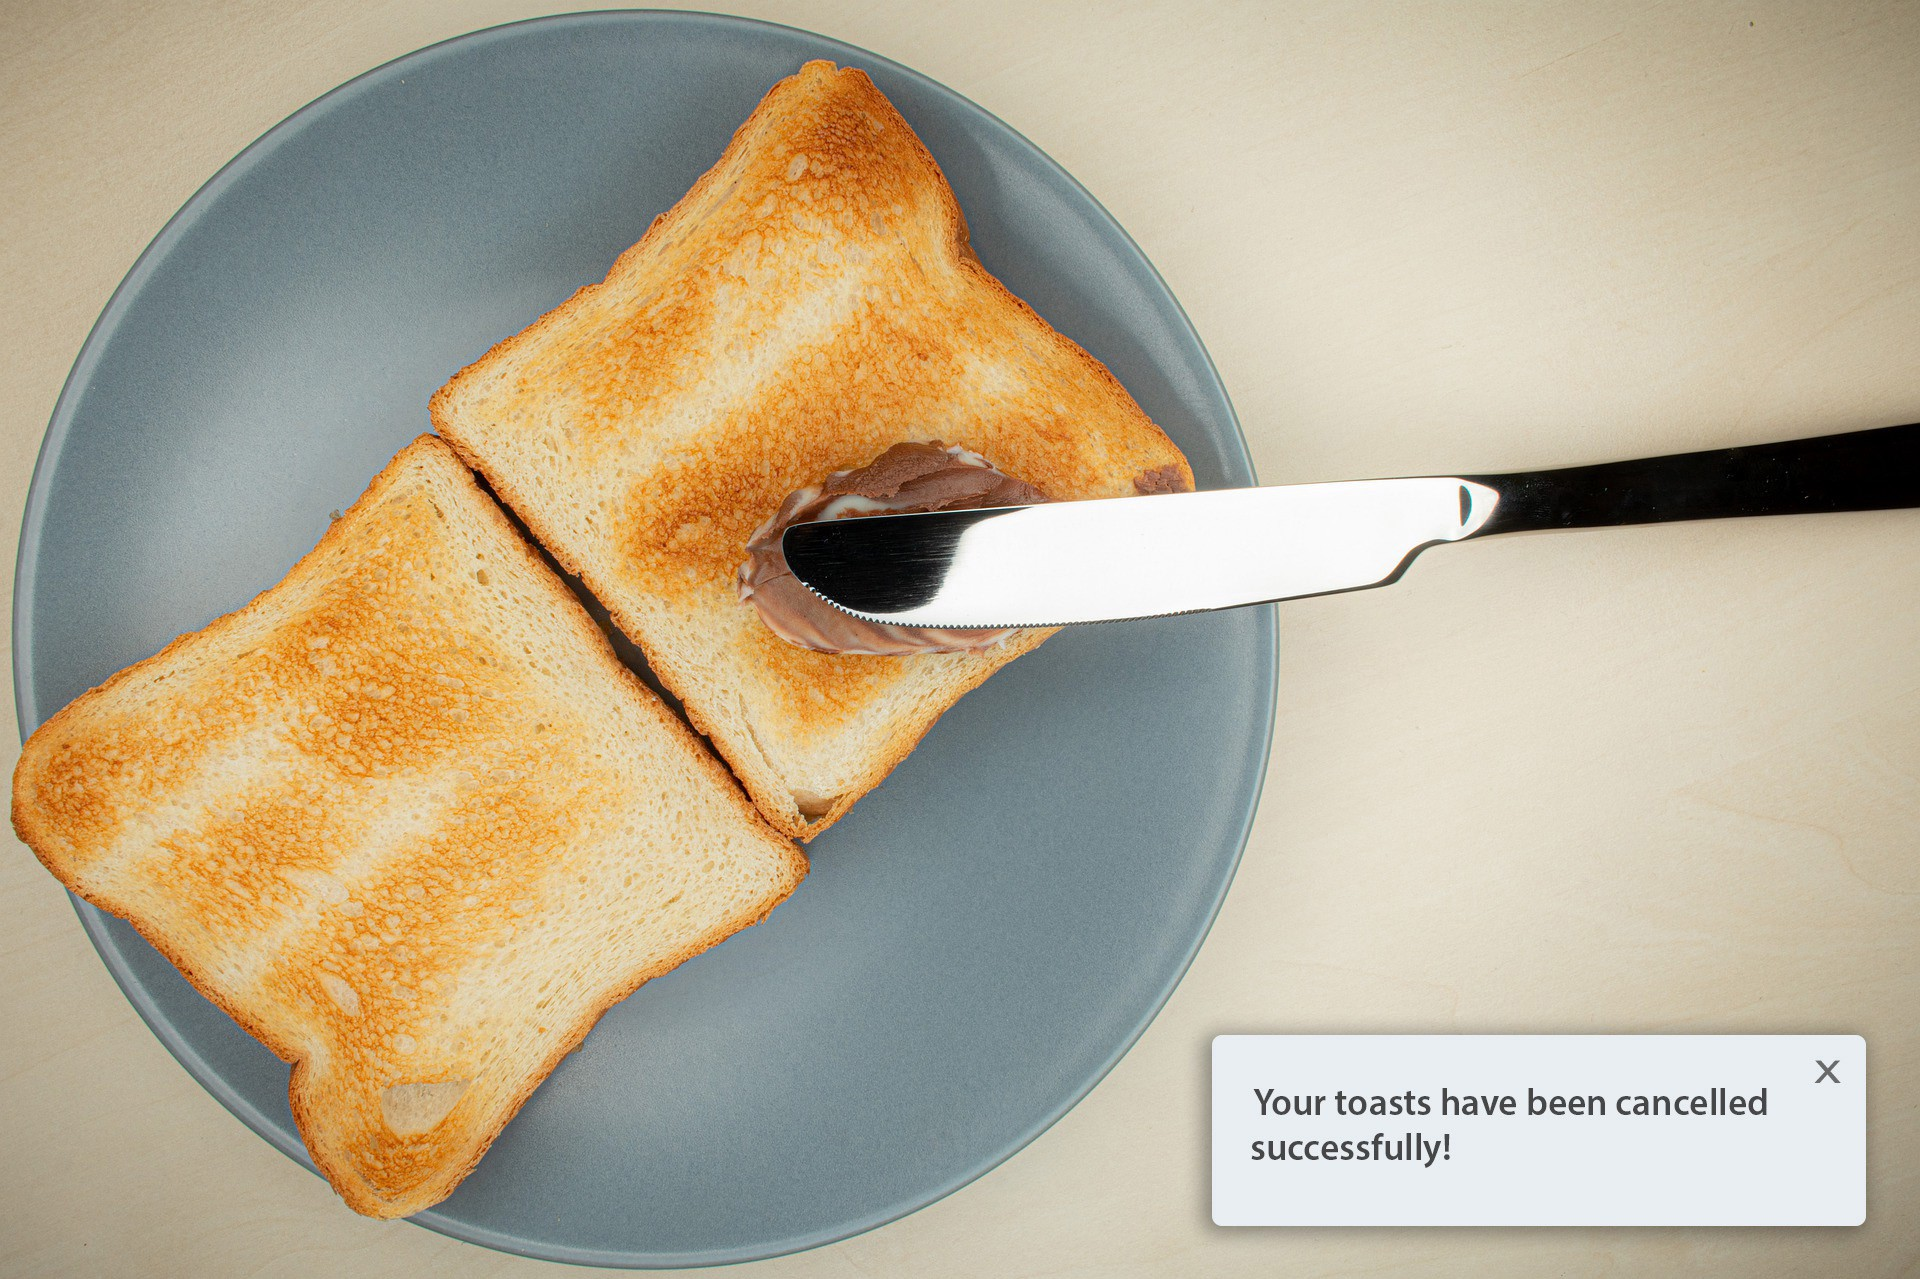 Two slices of toasted bread, a knife and some Nutella. A toast notification in the bottom right corner.